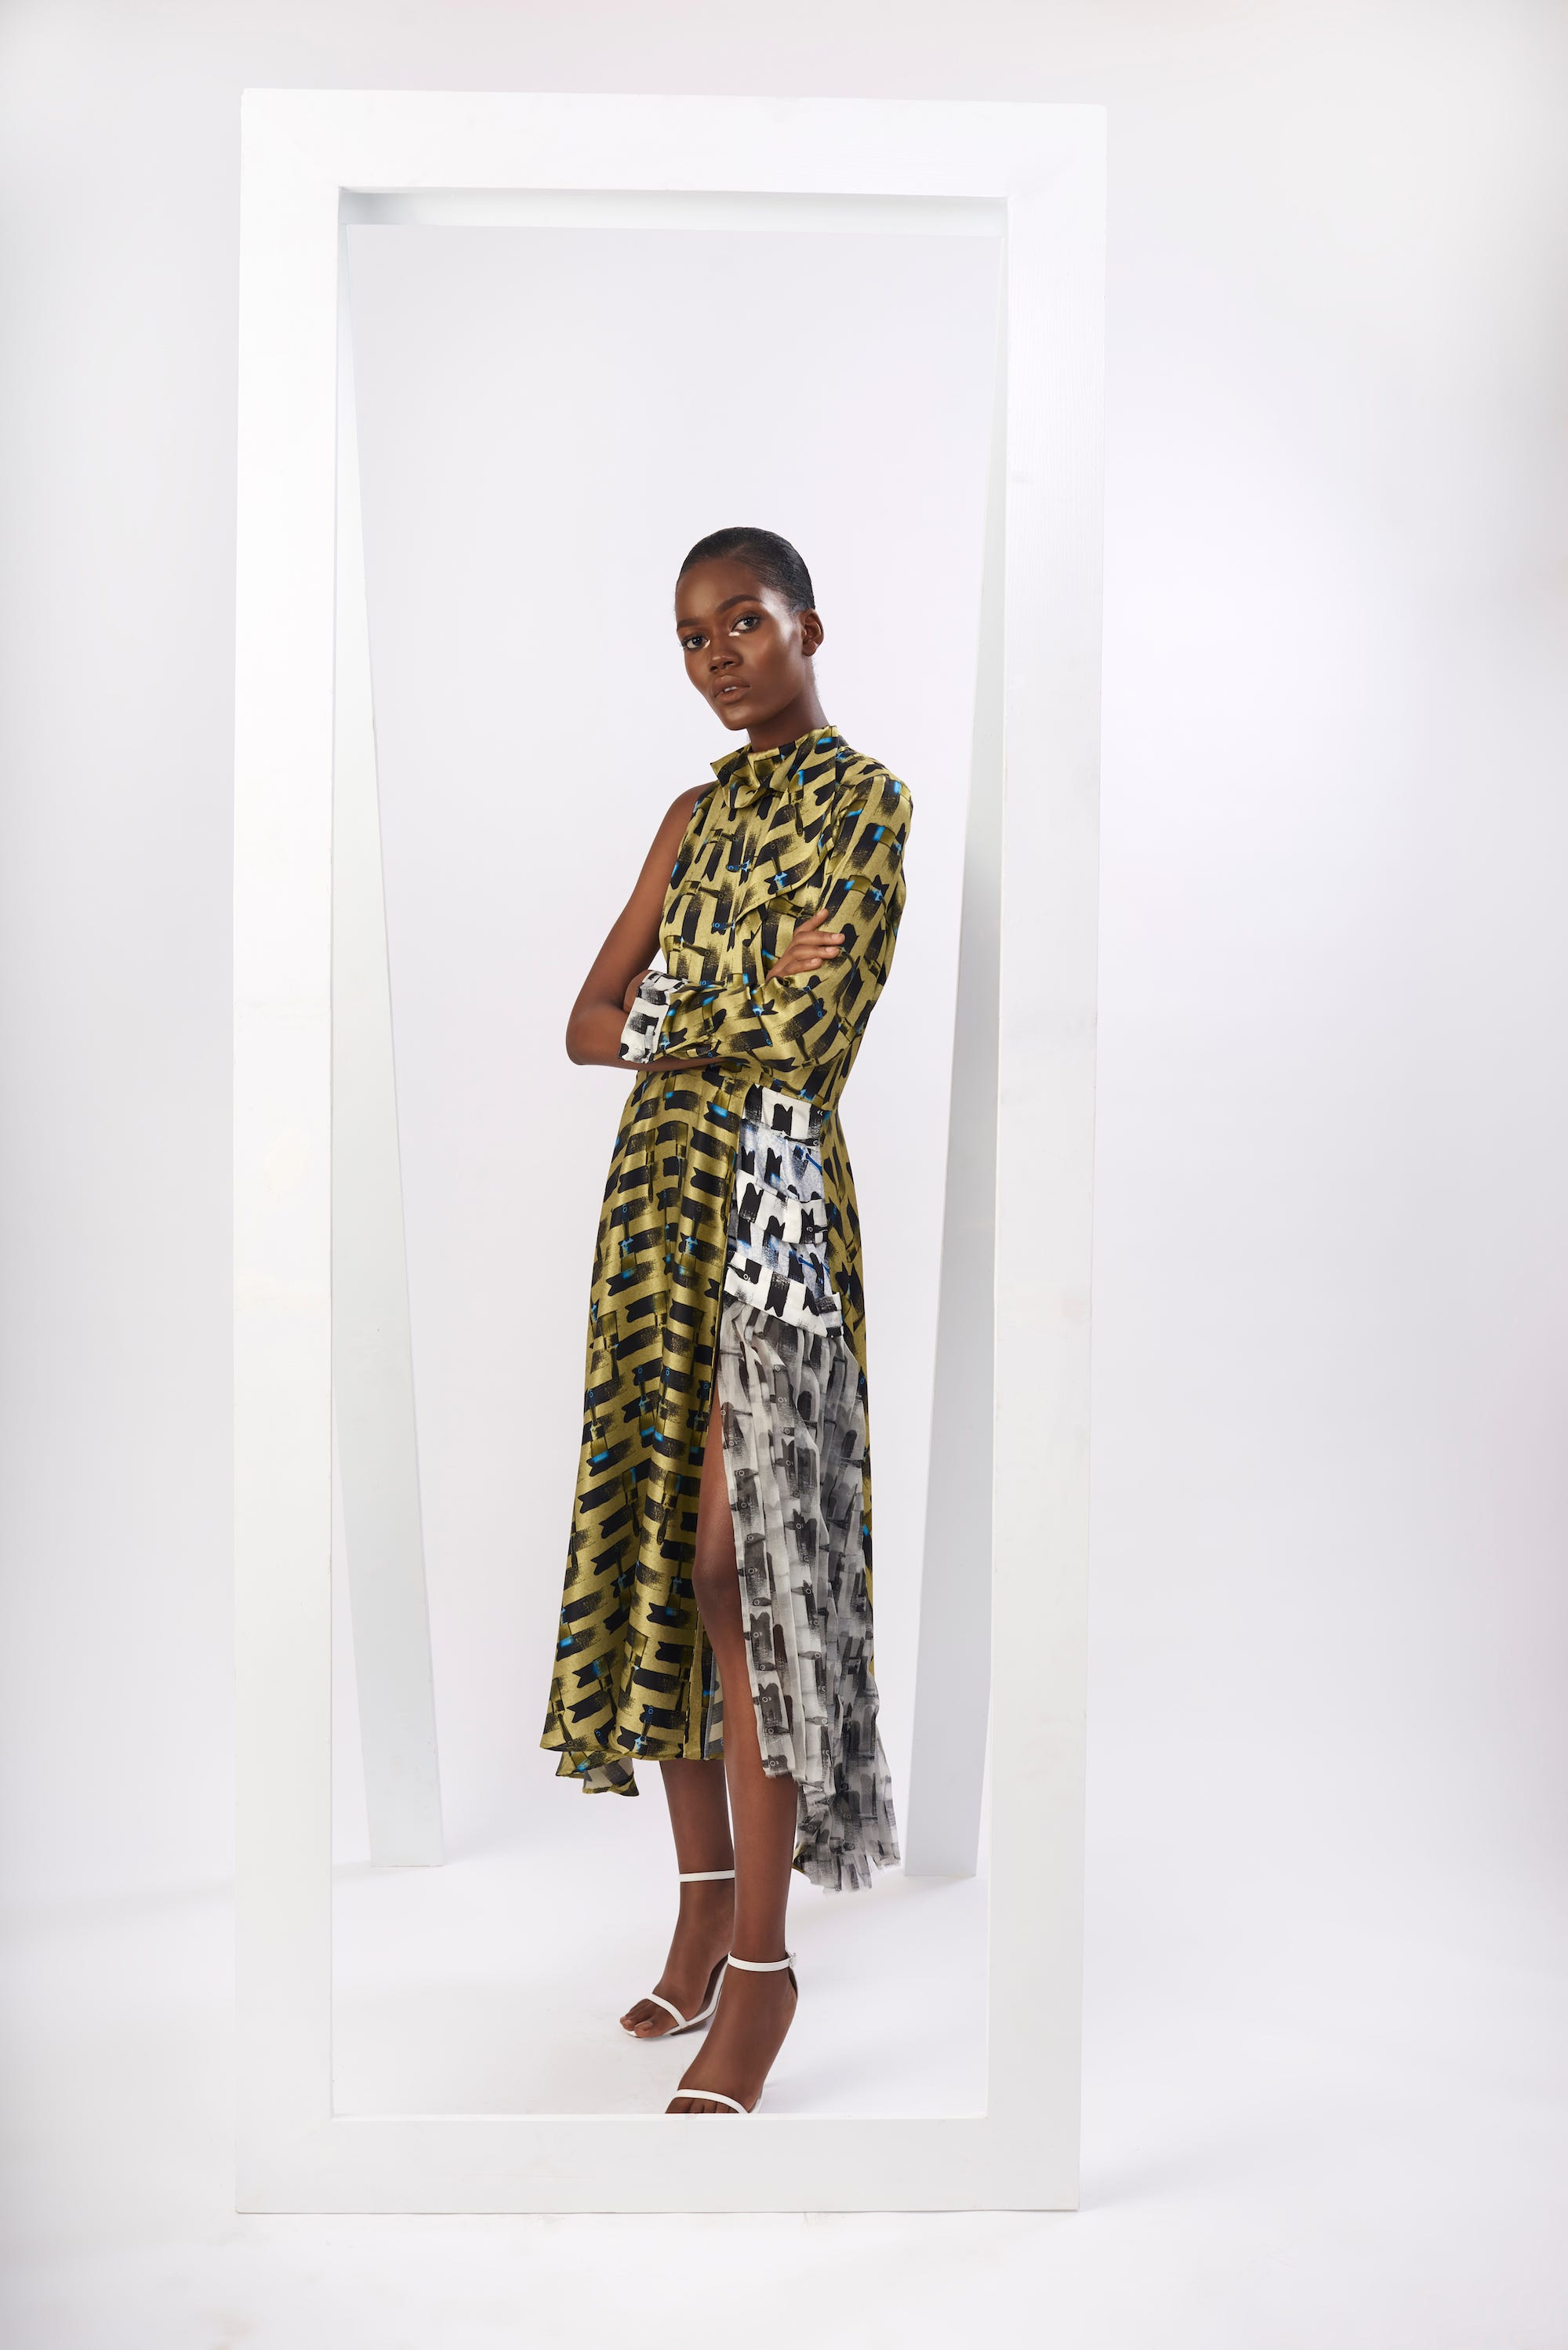 The Coolest Africa Designers To Shop From In 2018